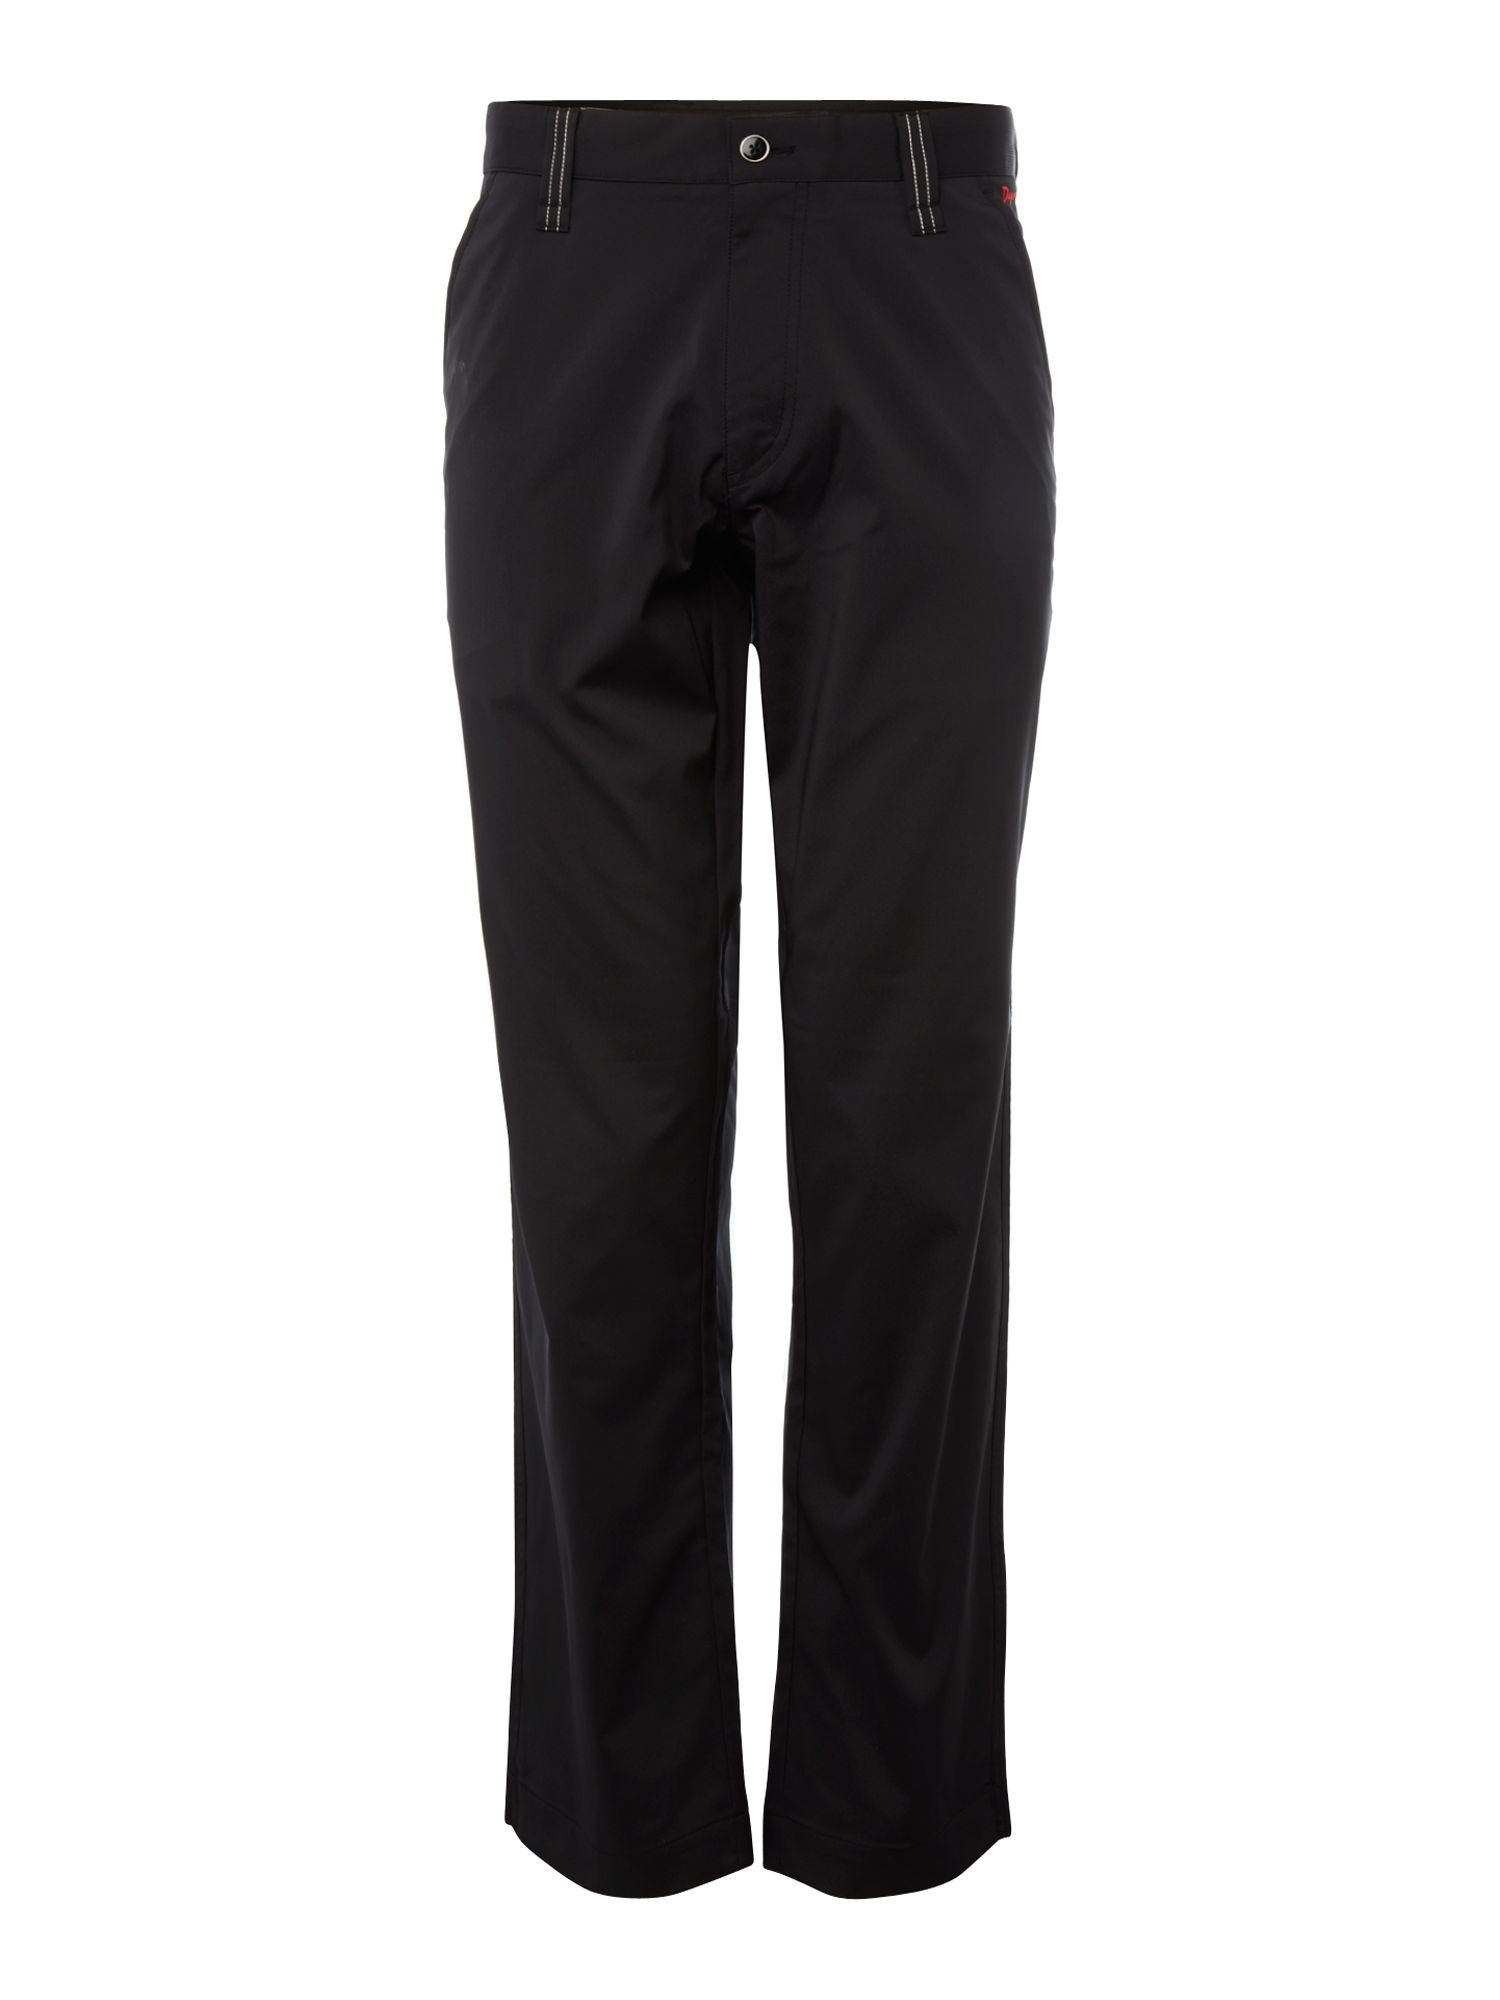 Dwyers and Co Men's Dwyers and Co Micro tech 2.0 trouser, Black